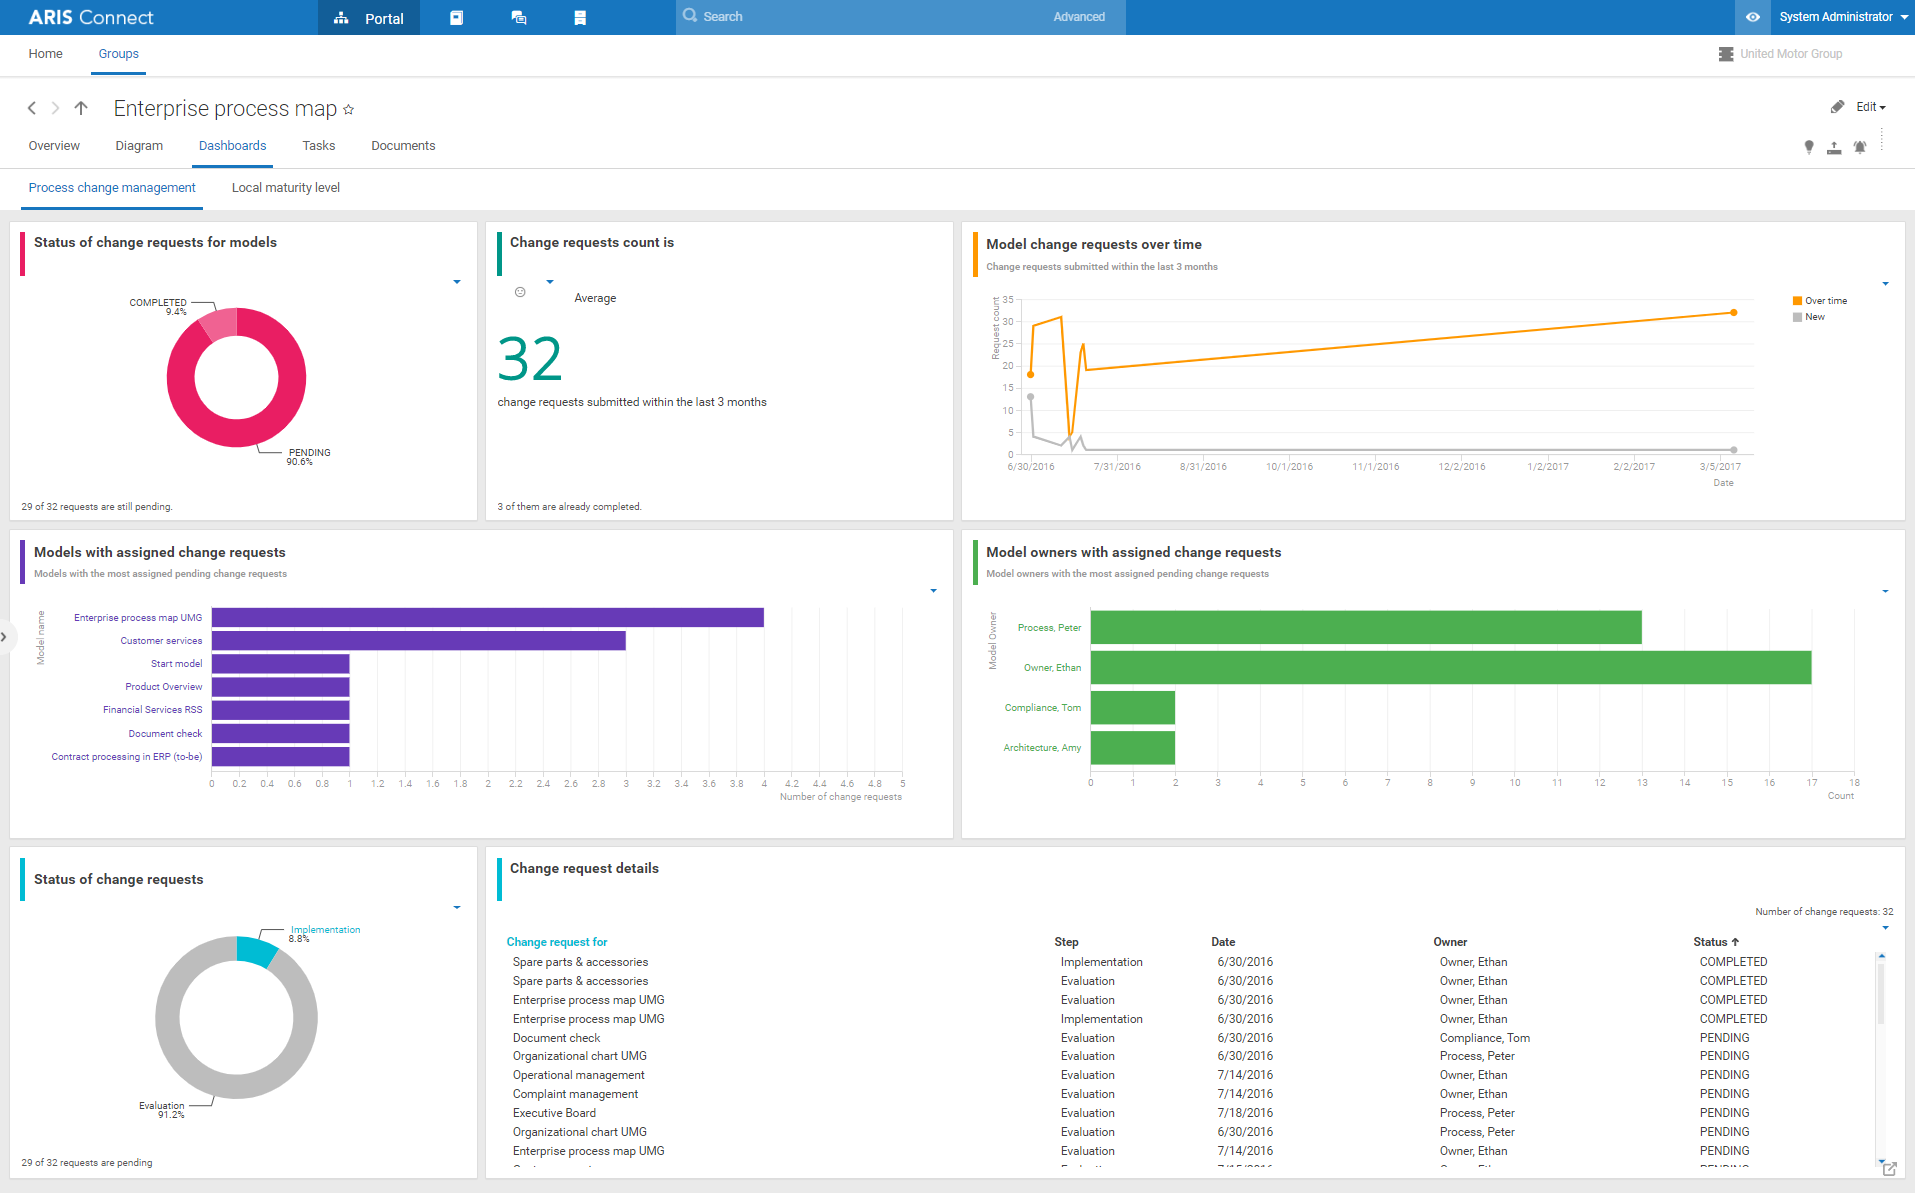 Dashboarding your processes with ARIS Elements